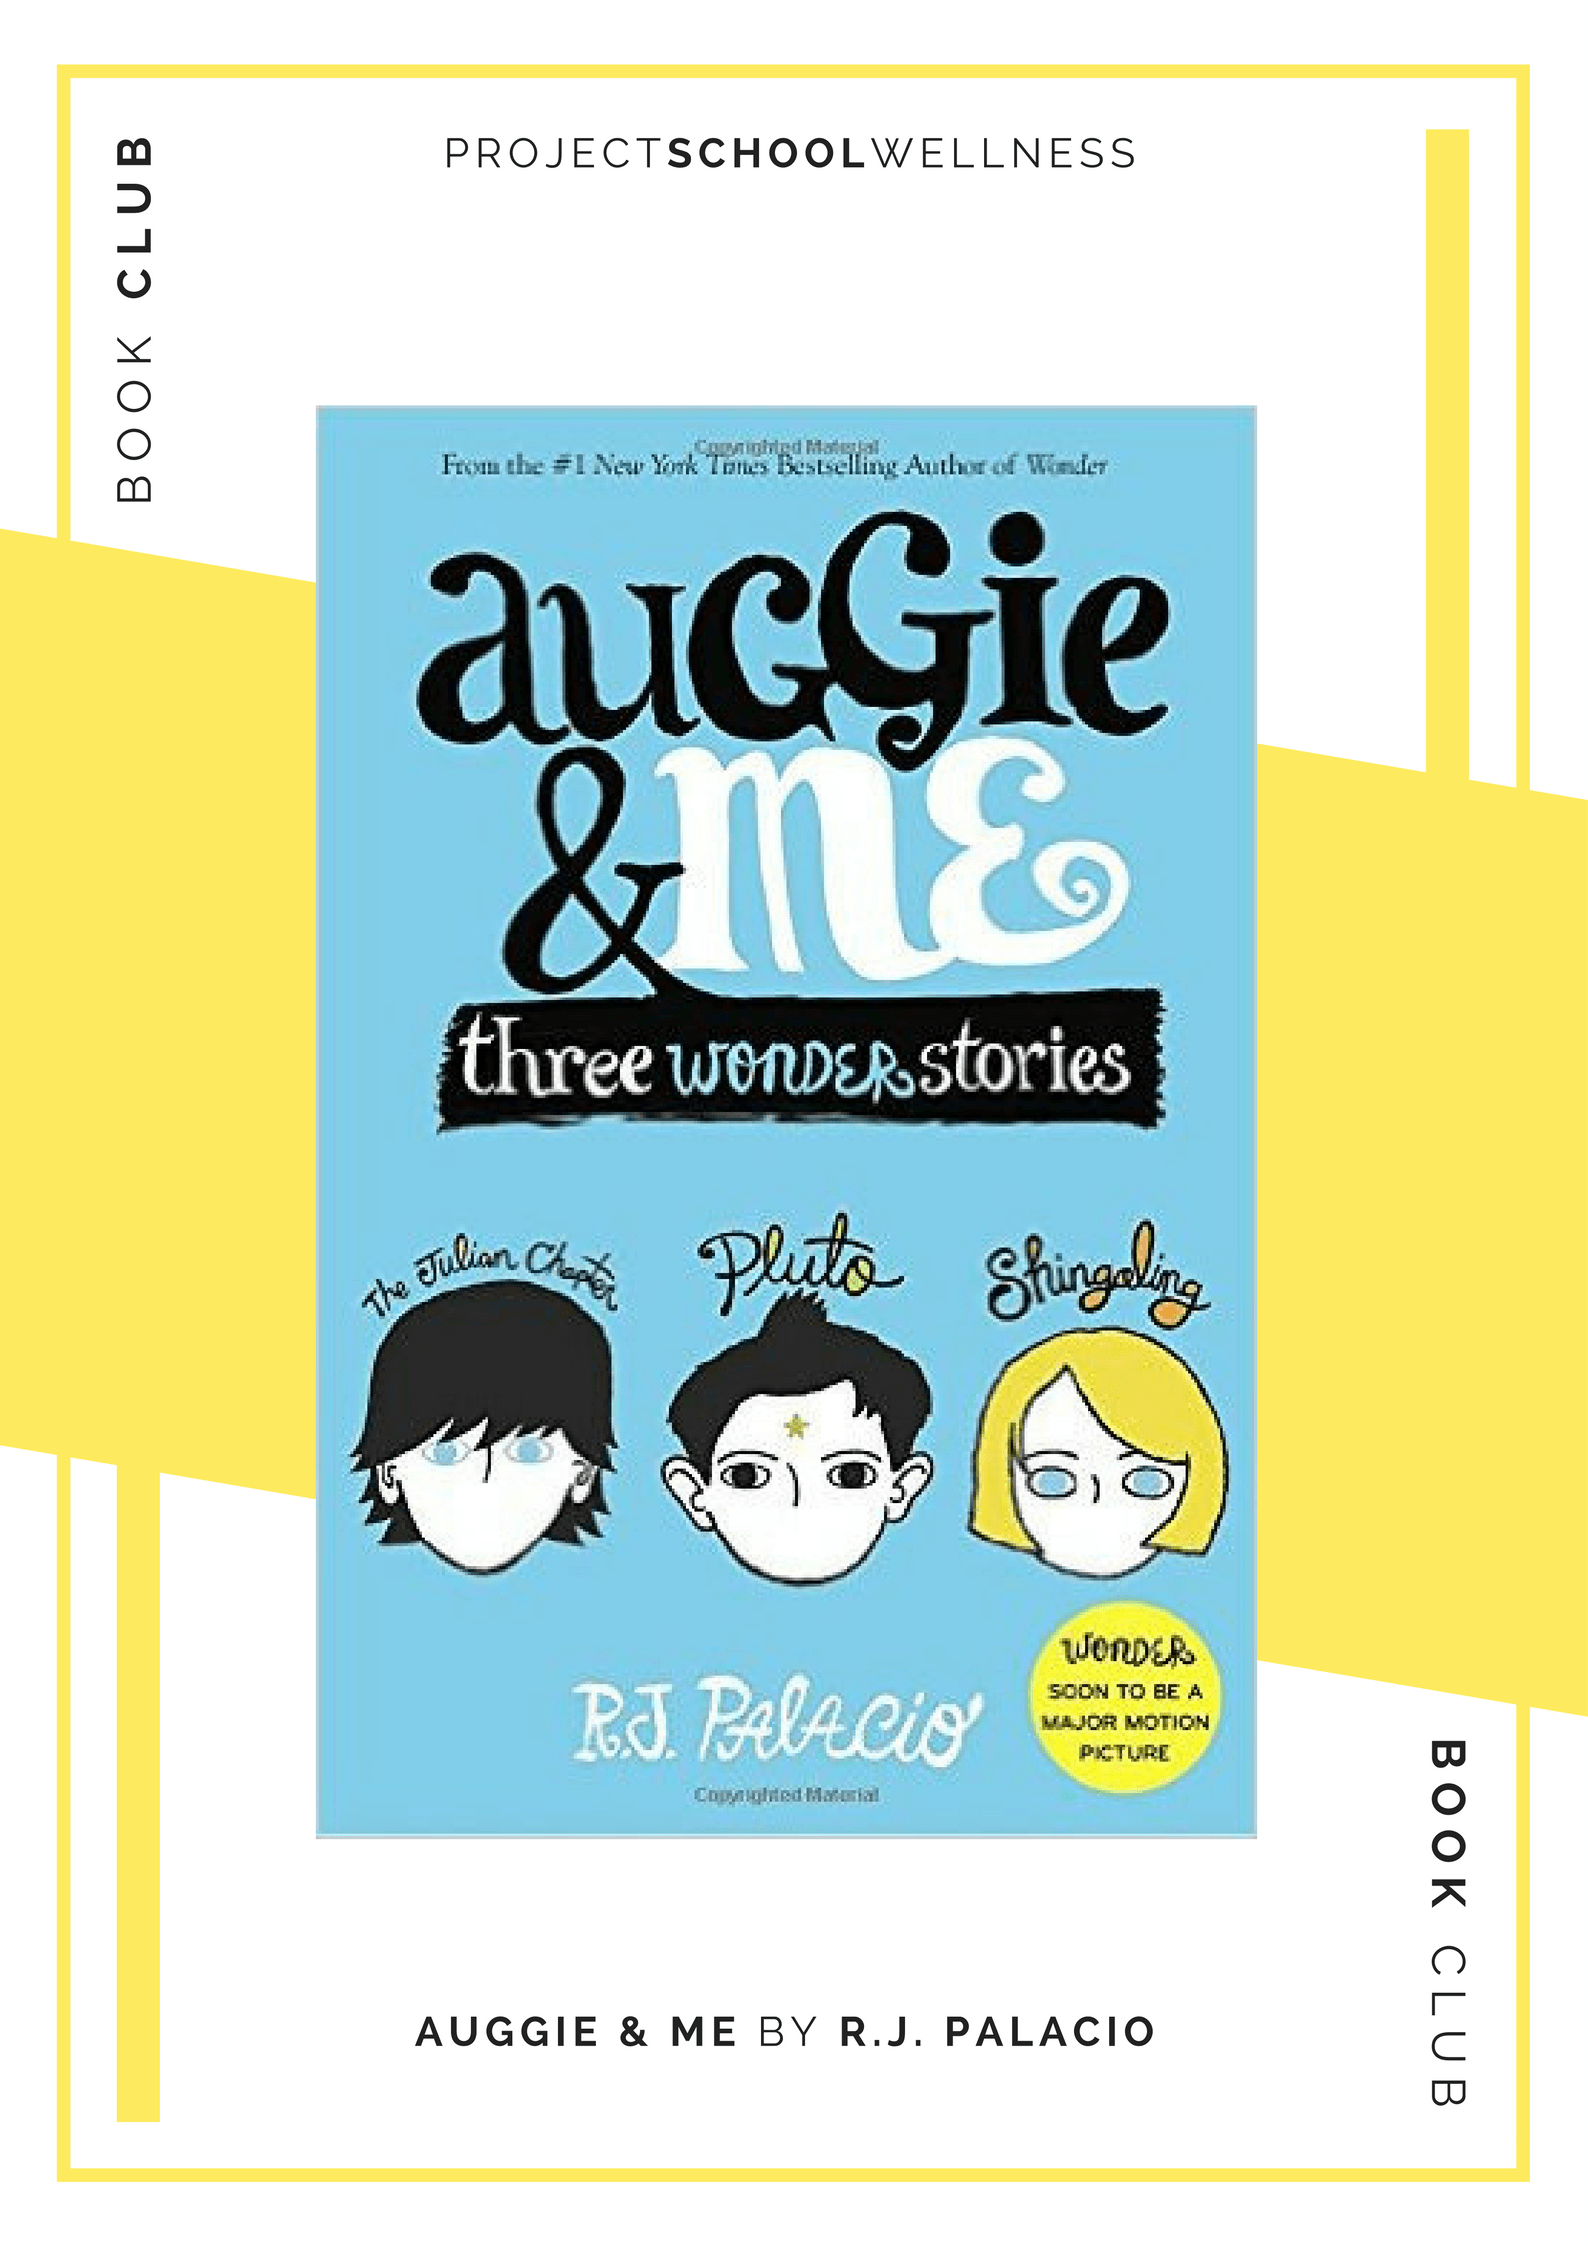 Project School Wellness book club. A list of must read books for teachers and parents! Each month Janelle from Project School Wellness her most current reads. Continue Auggie's story with this incredible Wonder companion book. Auggie and Me steps into the heart and minds of Auggie's classmates and friends.